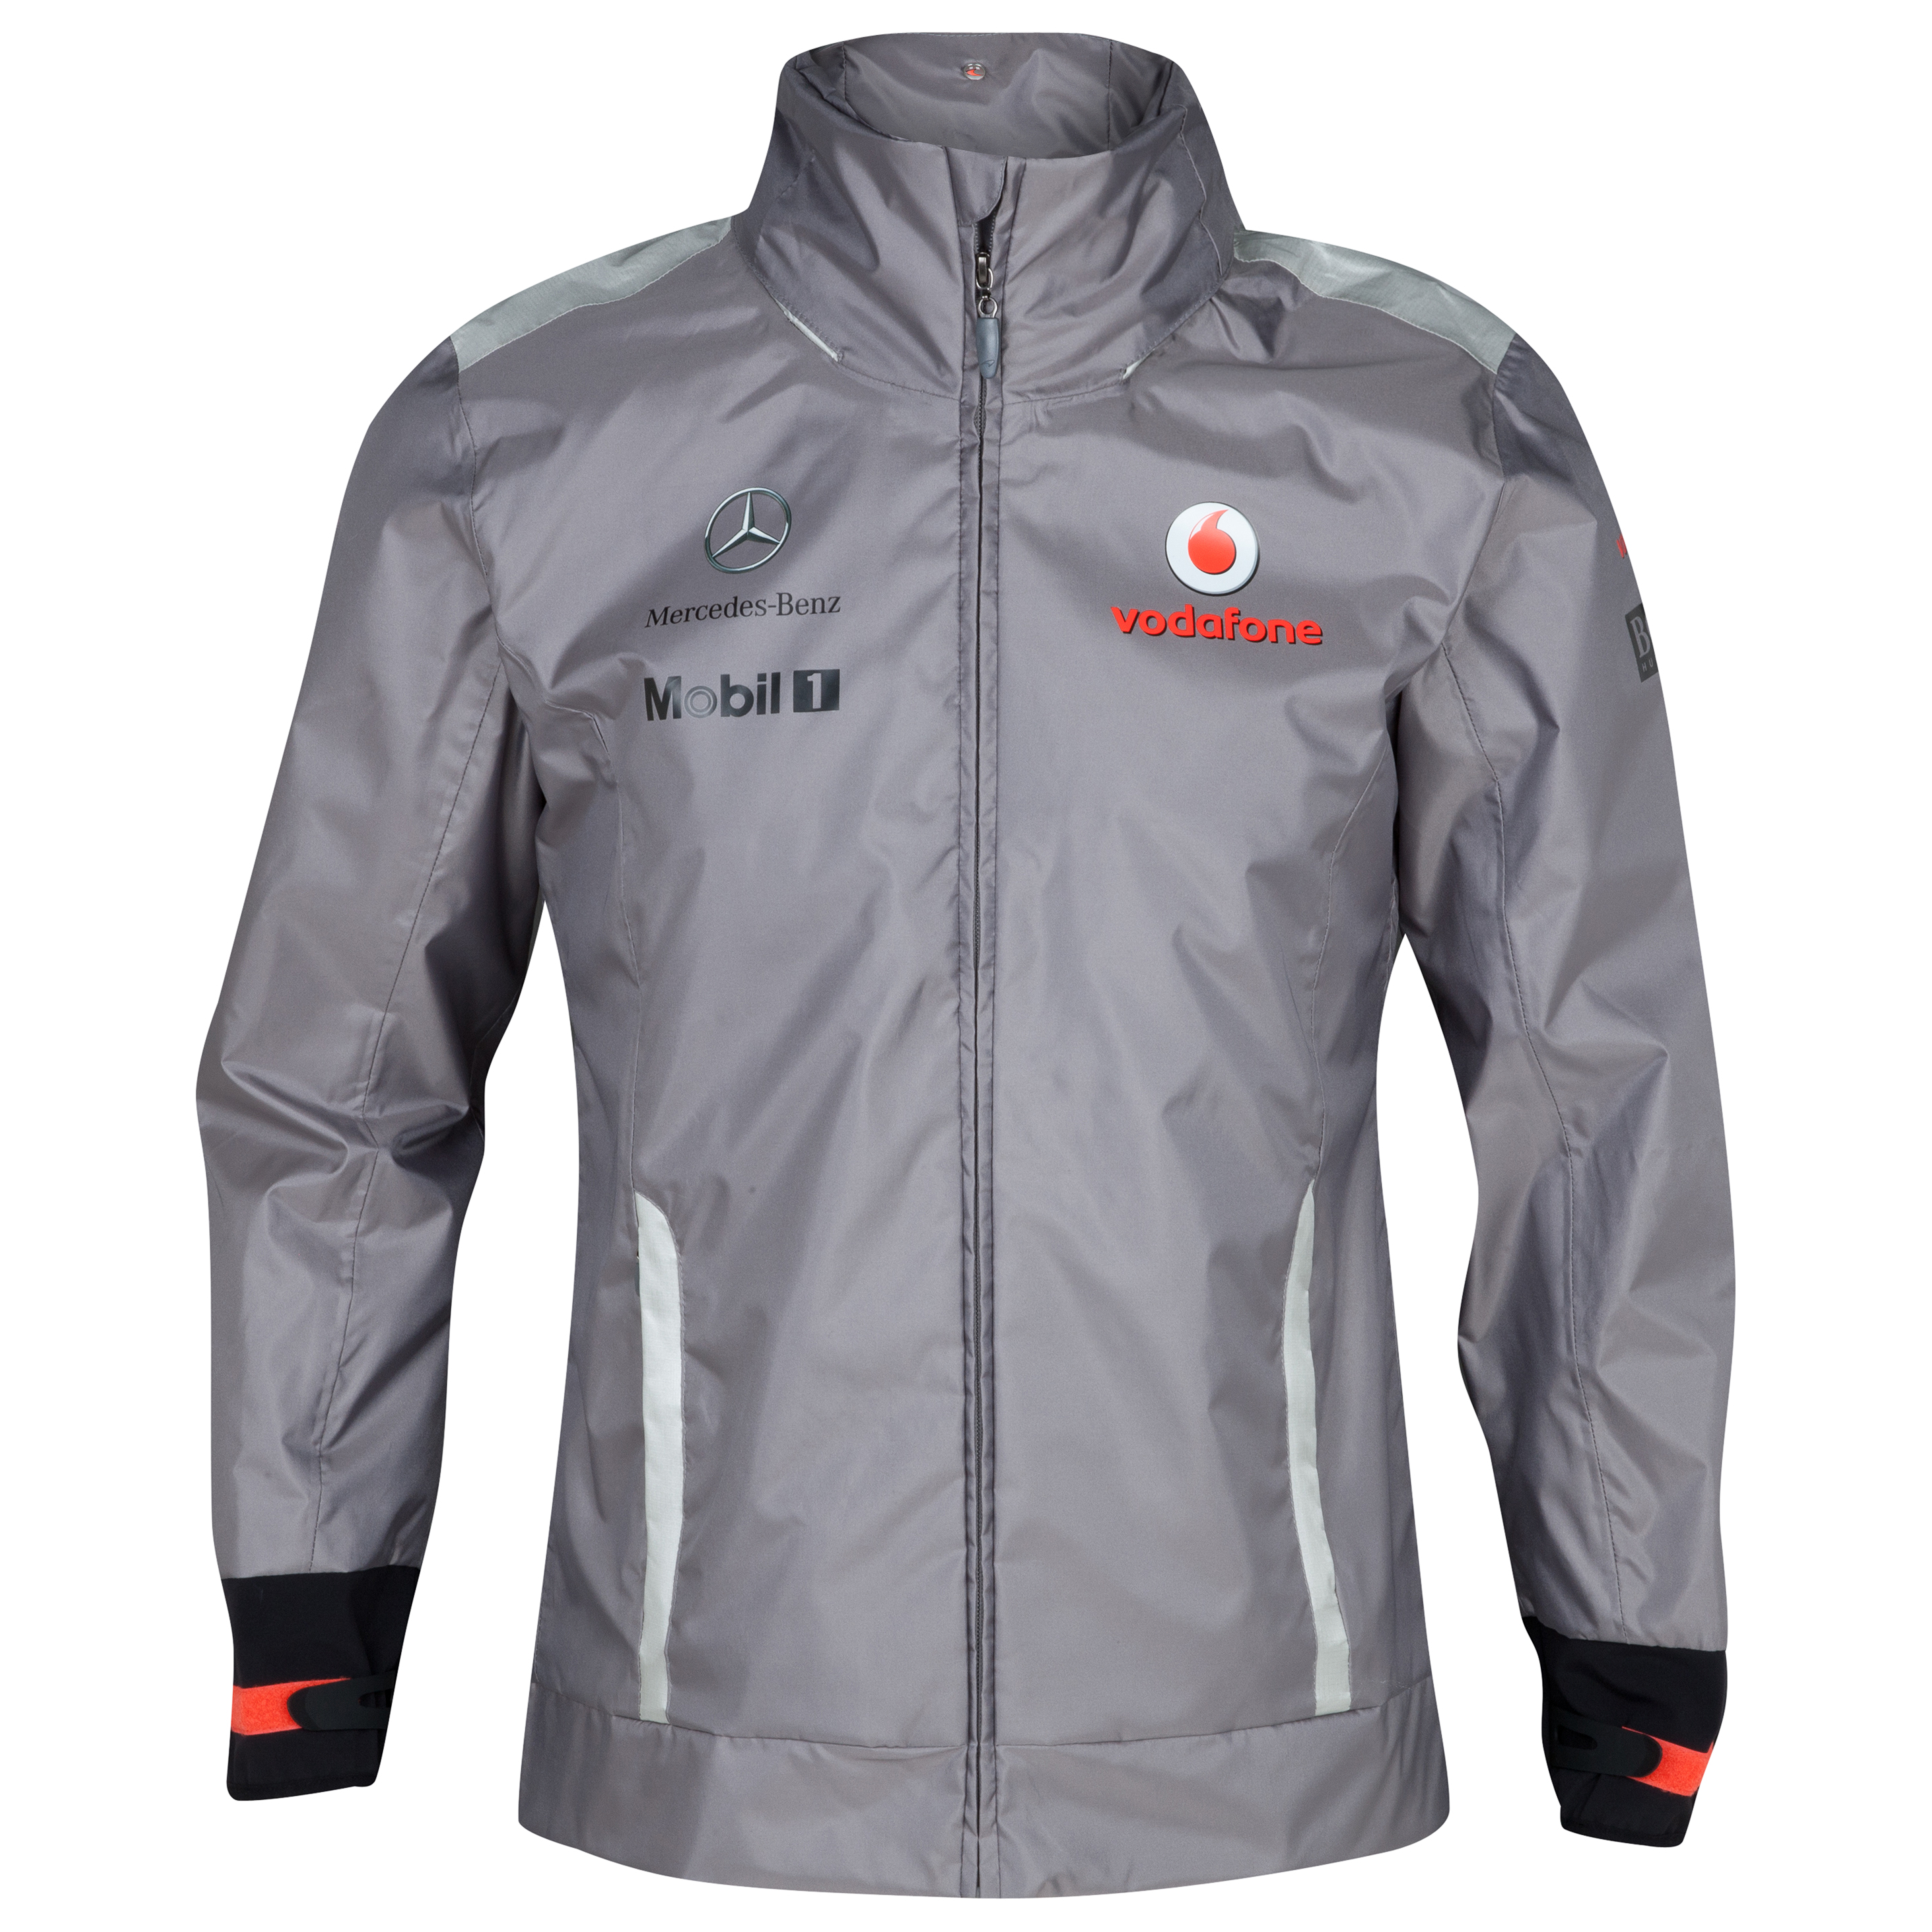 Vodafone McLaren Mercedes 2012 Team Waterproof Jacket